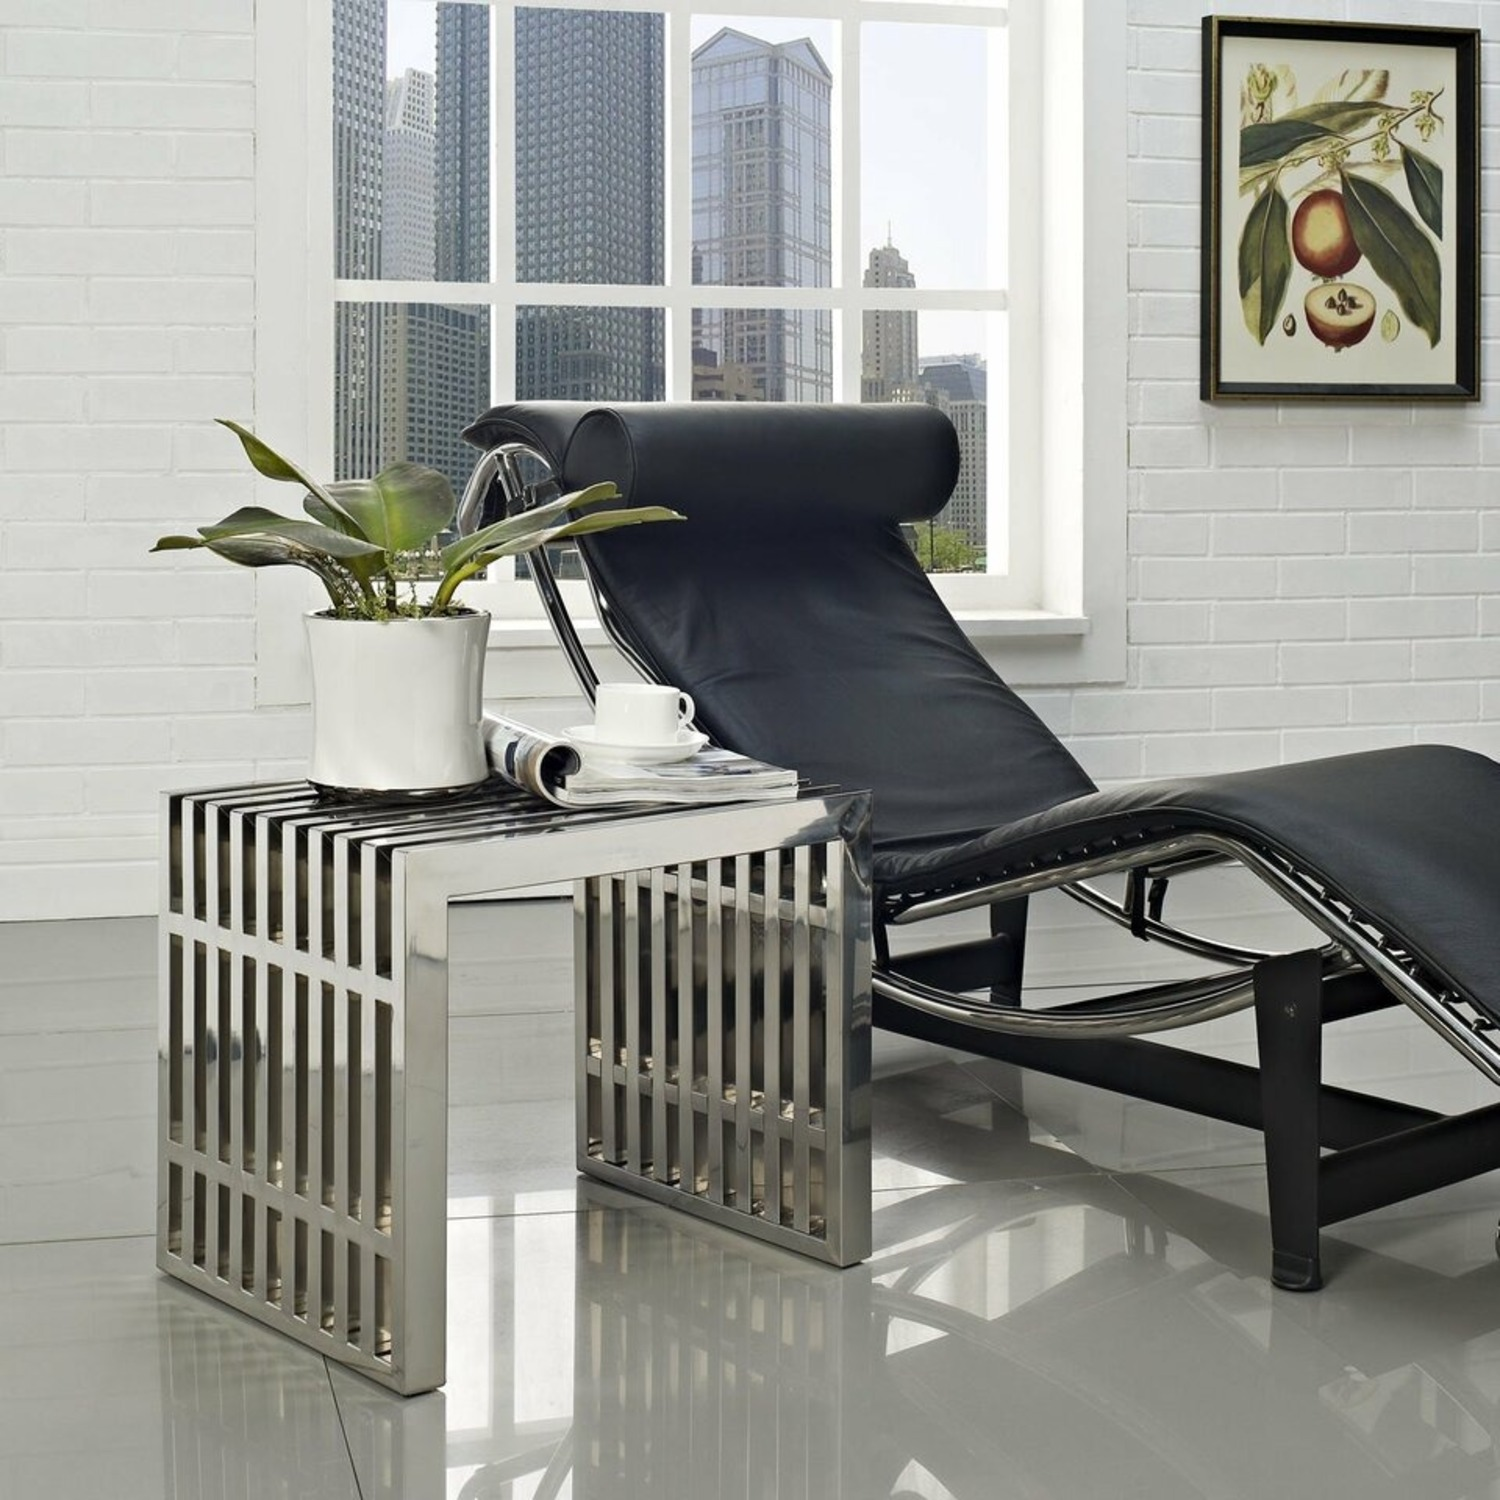 Bench In Stainless Silver Steel Finish - image-3